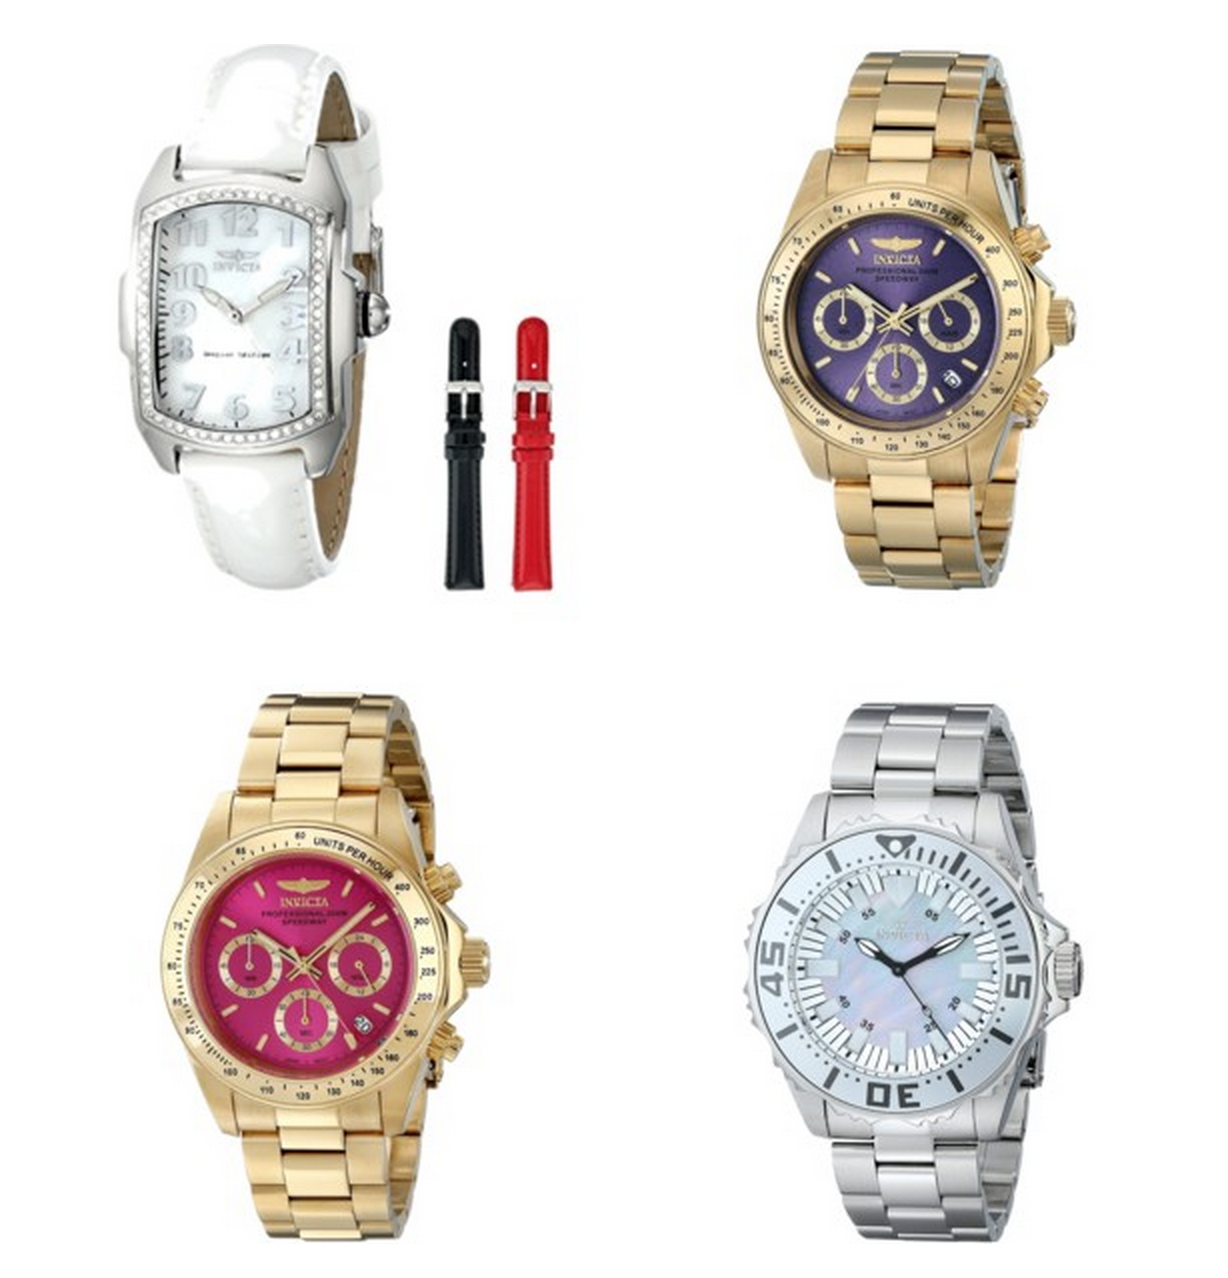 HOT! Invicta Watches Starting At Just $54.99 + FREE One Day Shipping!